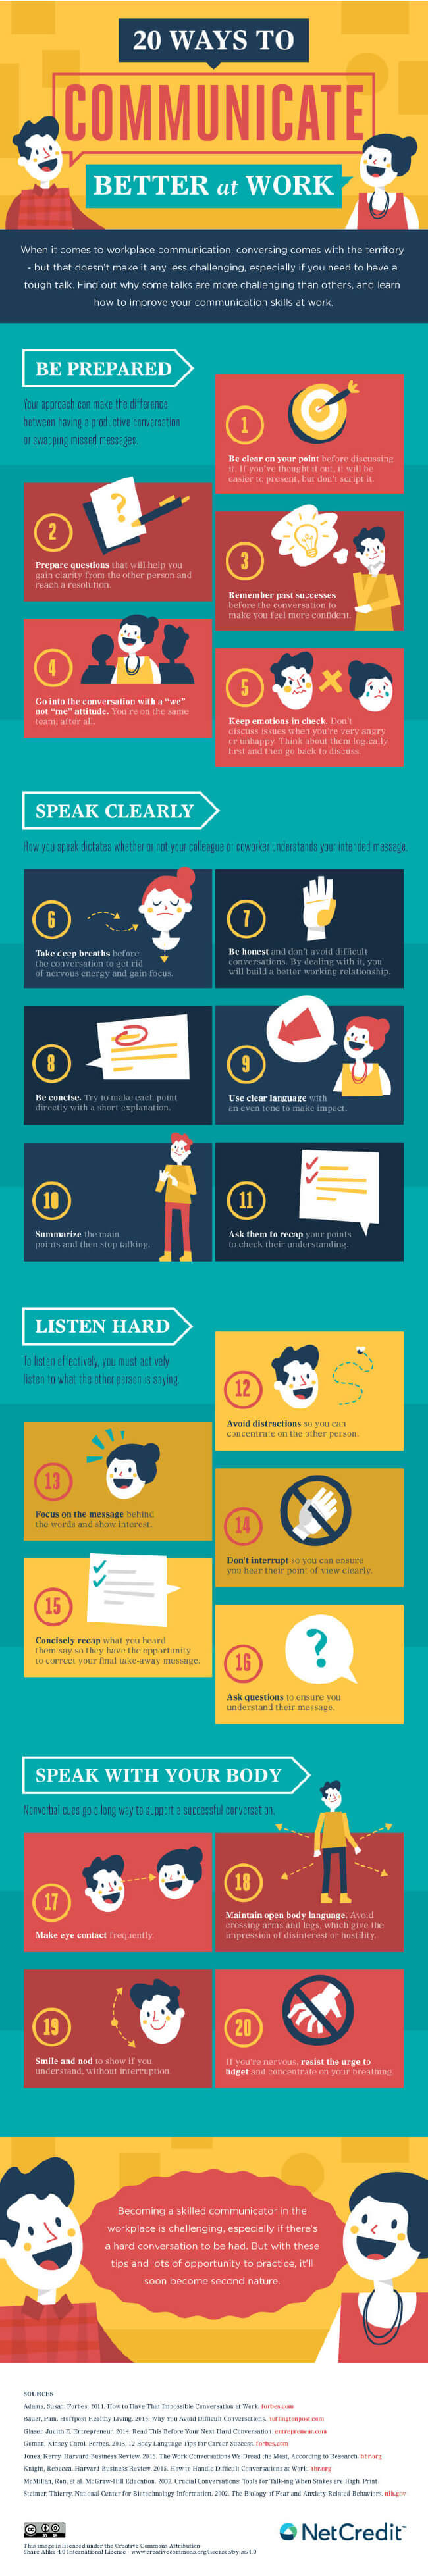 Image titled how to communicate better at work